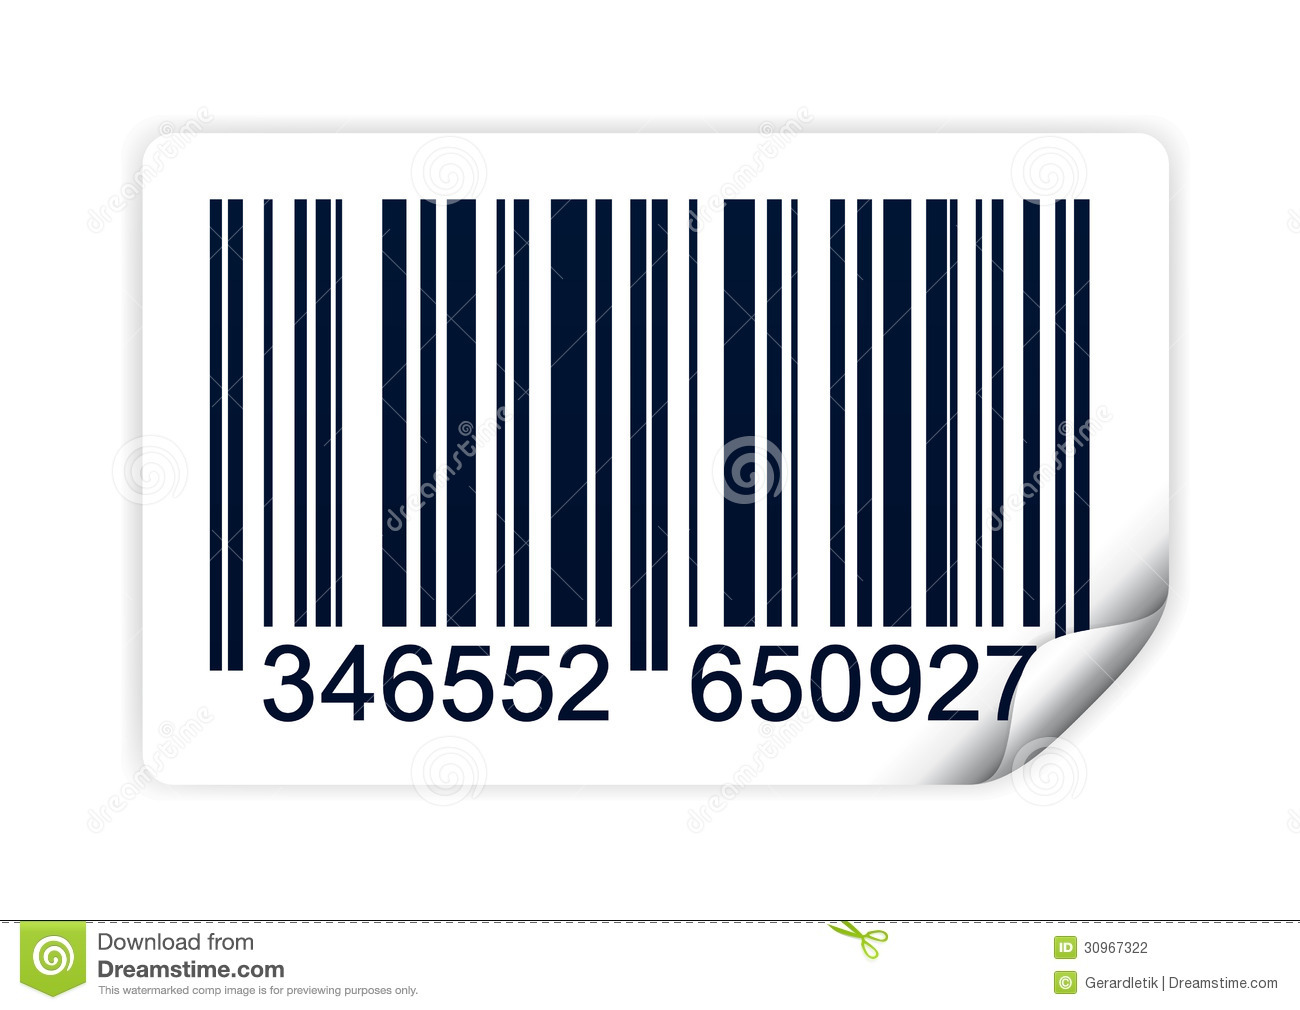 barcode image clipart - photo #43